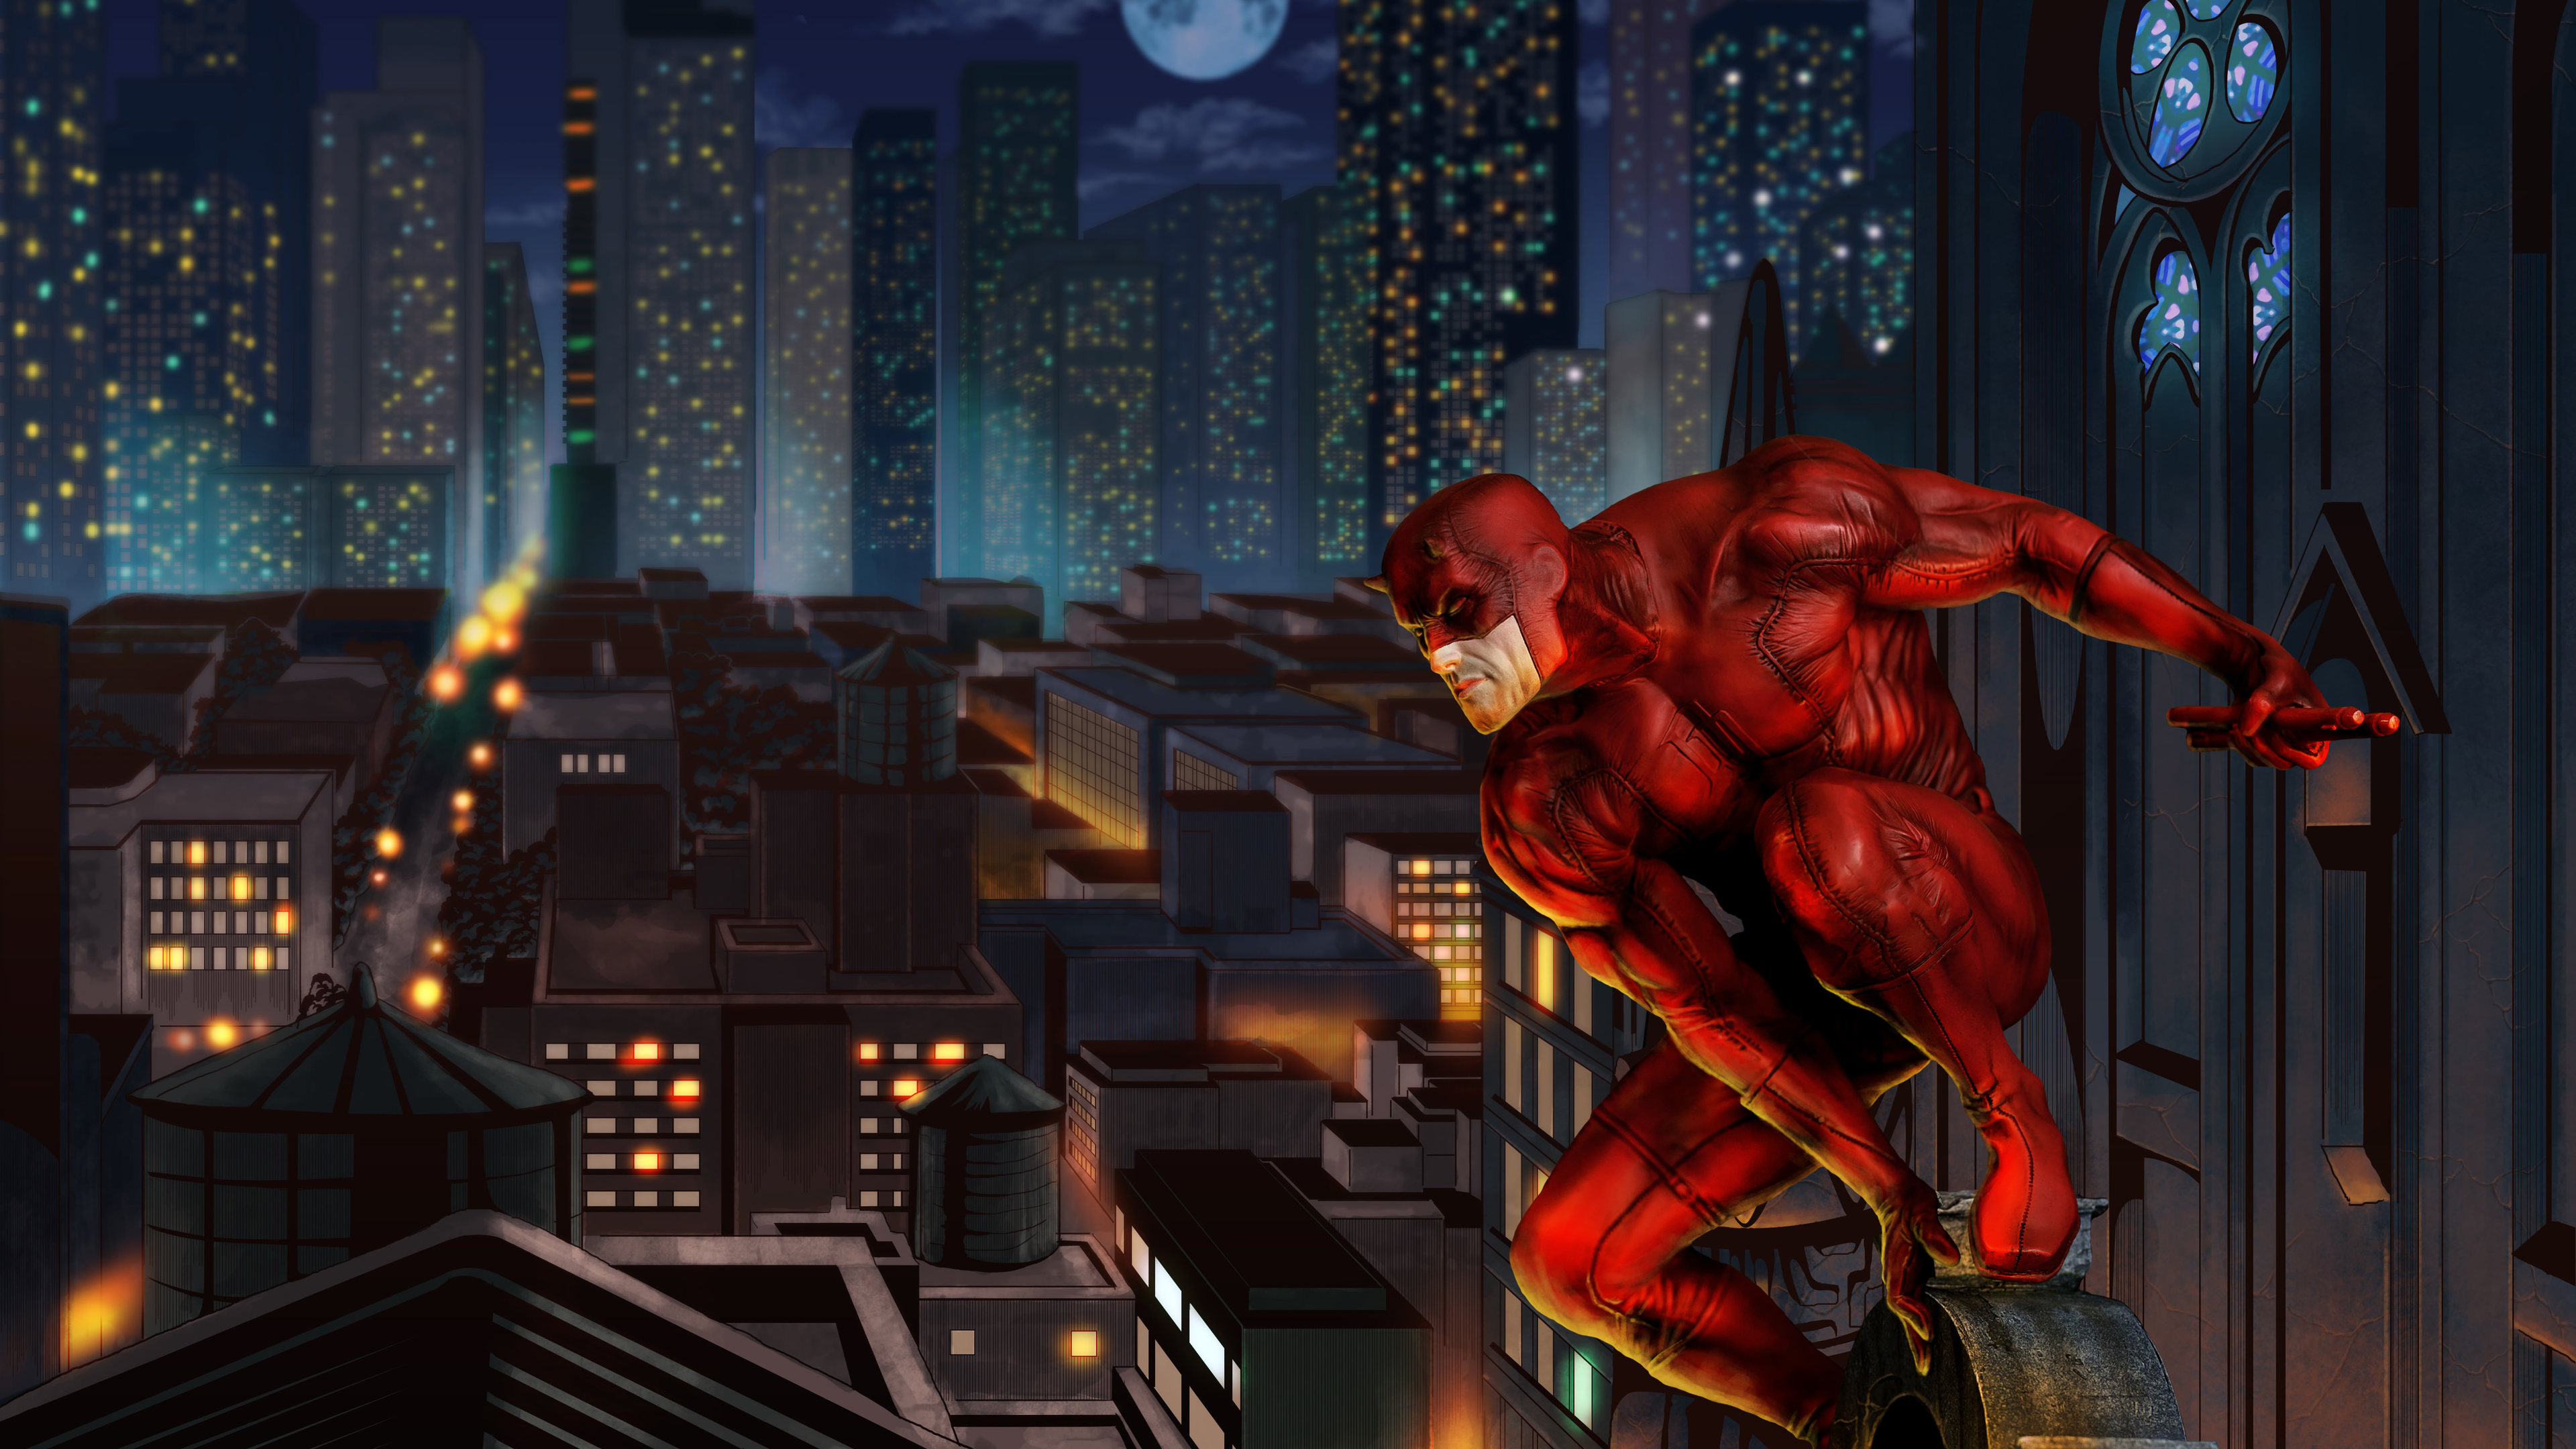 daredevil 4k 2018 1543618786 - Daredevil 4k 2018 - superheroes wallpapers, hd-wallpapers, daredevil wallpapers, 4k-wallpapers